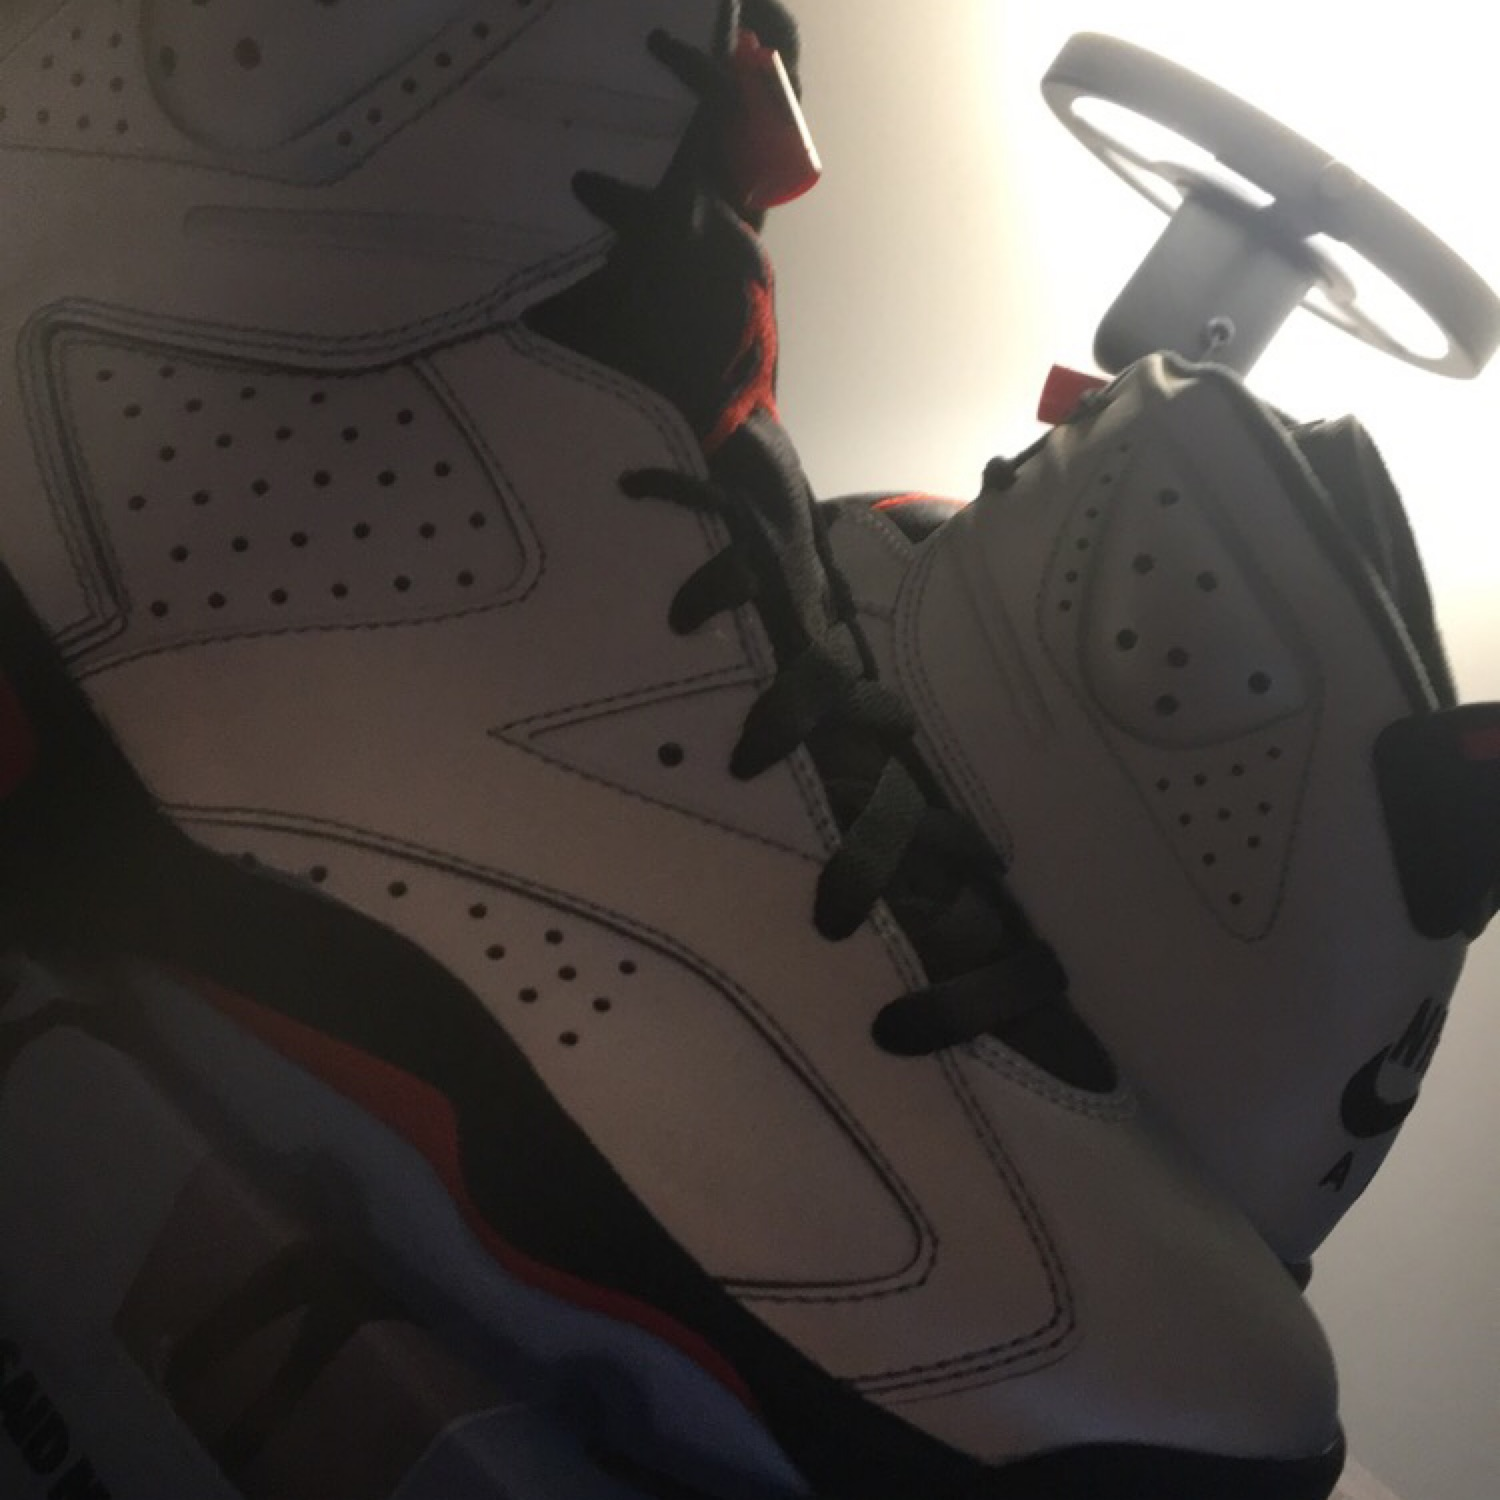 Jordan 6 Reflection Of Champions Pack